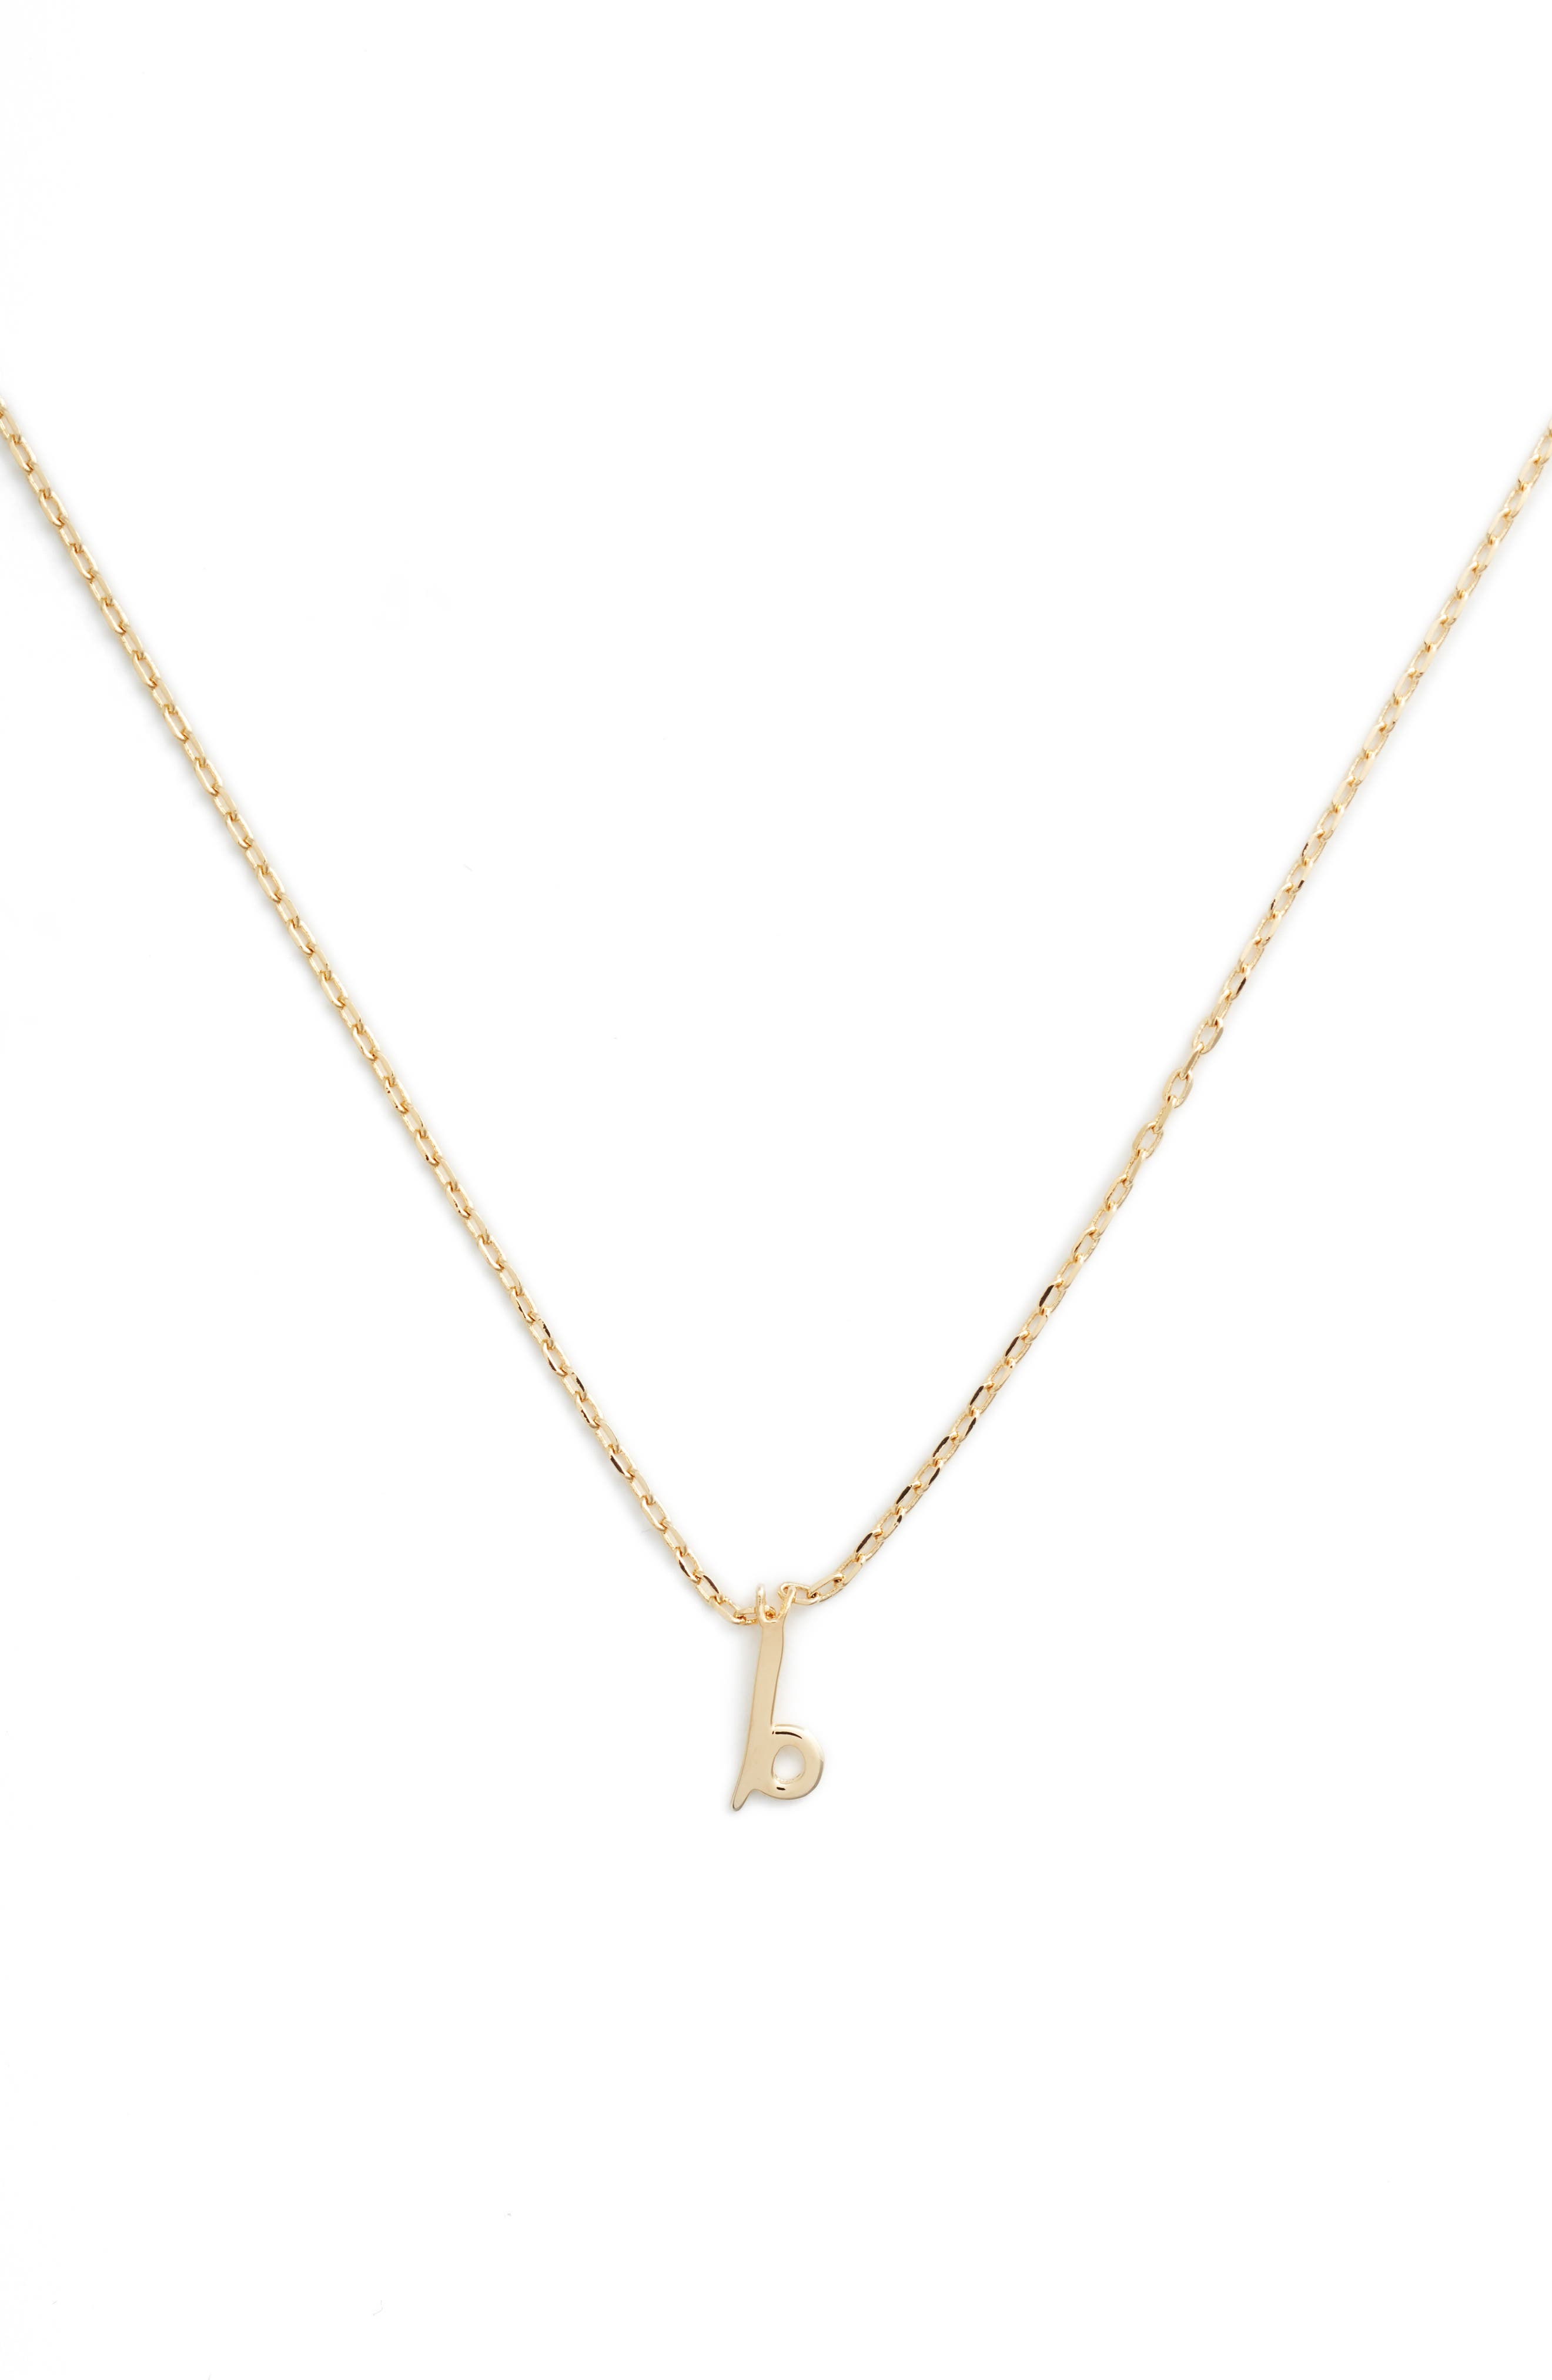 kate spade one in a million initial pendant necklace,                         Main,                         color, B-GOLD